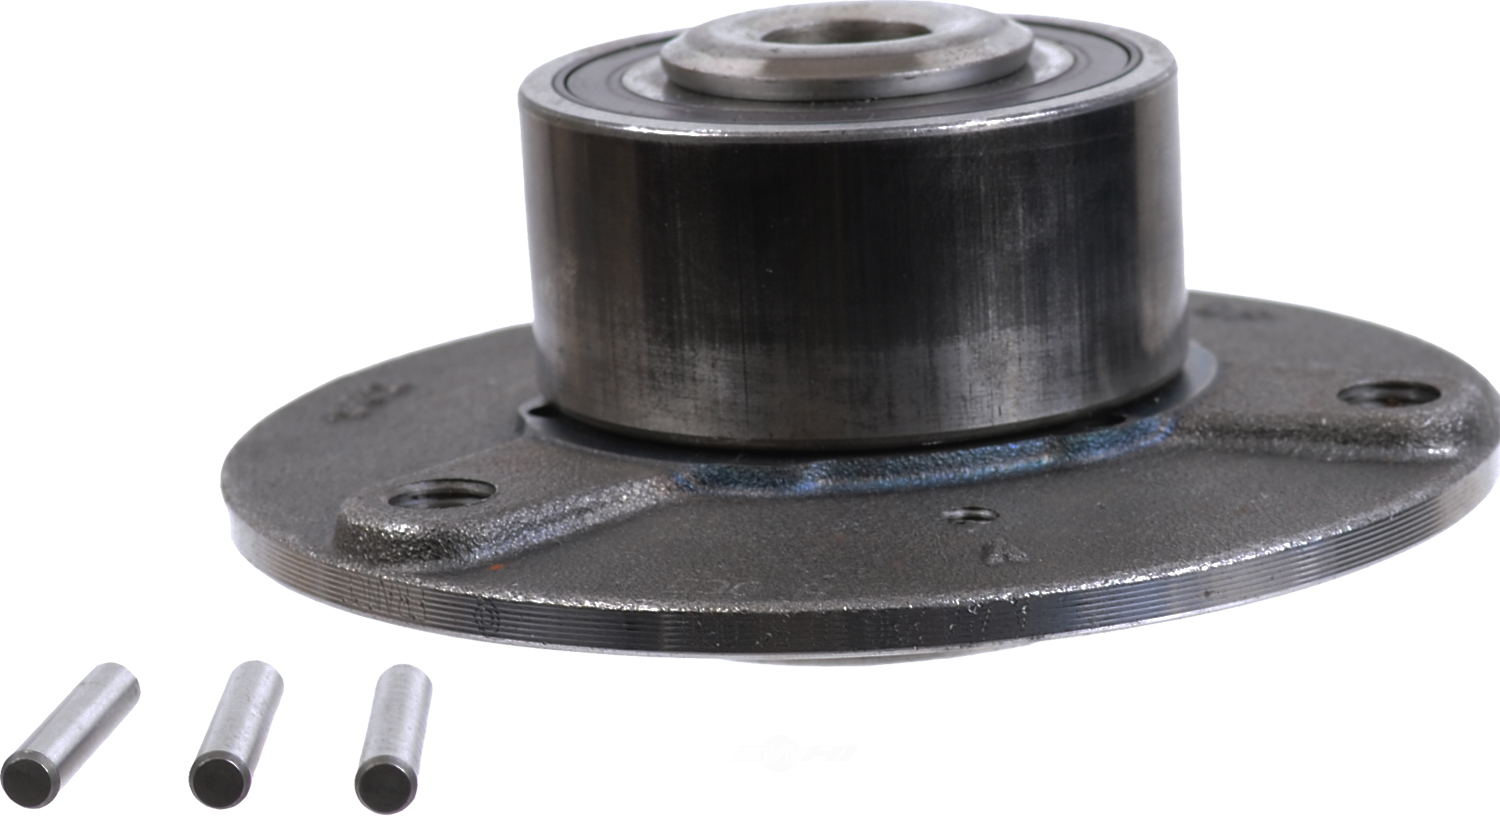 SKF (CHICAGO RAWHIDE) - Axle Bearing and Hub Assembly Repair Kit - SKF BR930861K